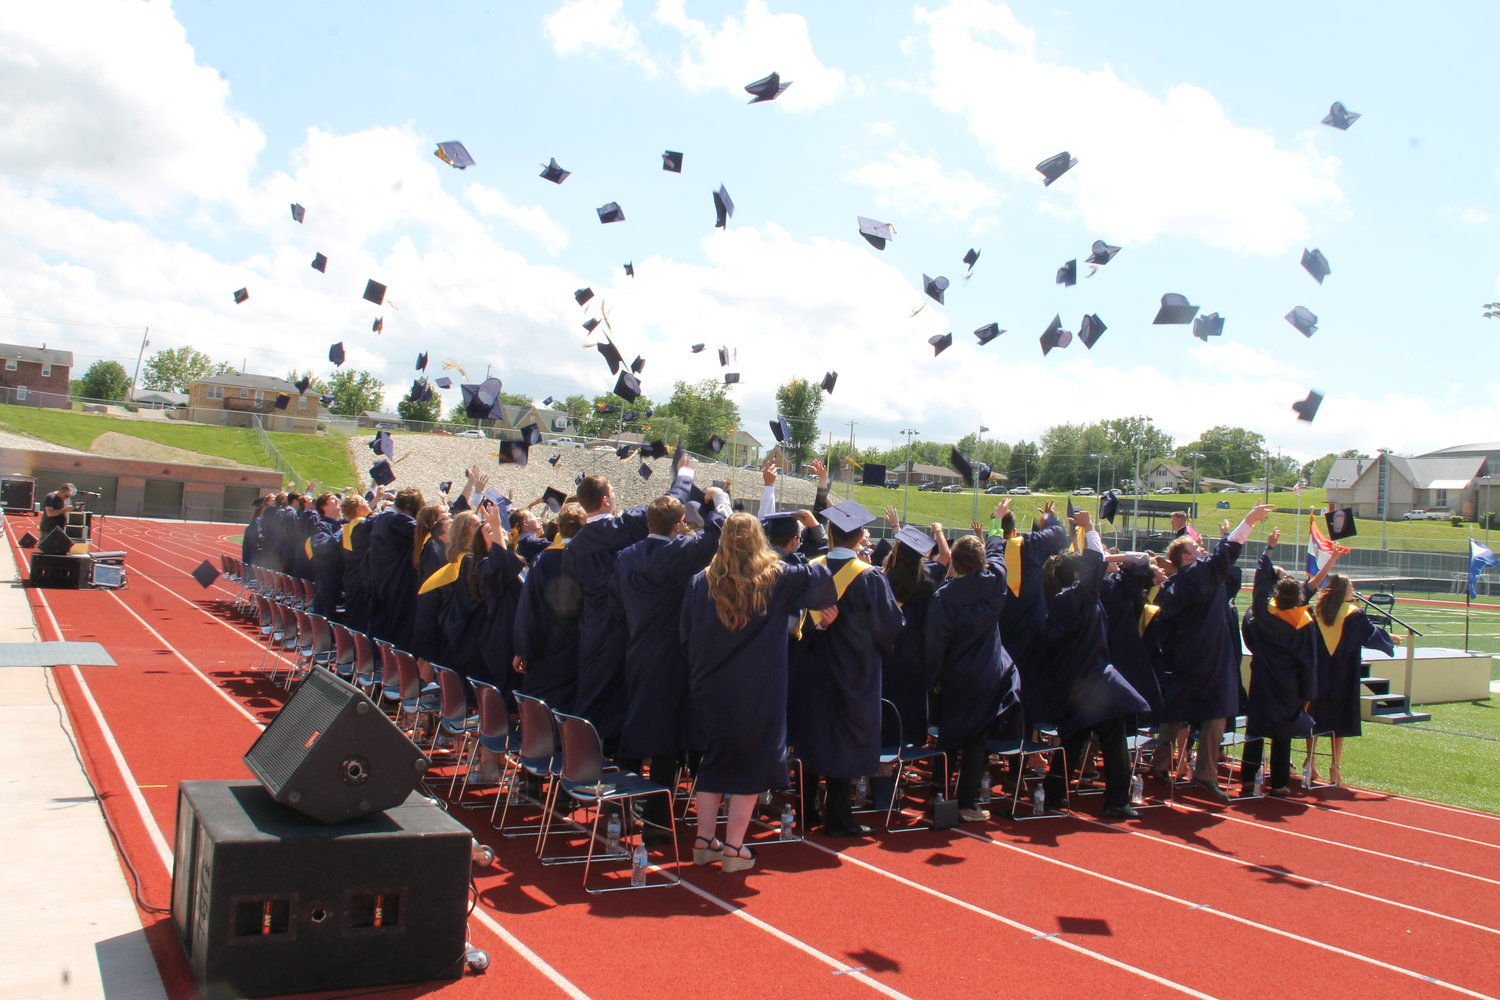 Members of the Helias Catholic High School Class of 2019 toss their mortarboards into the air at the end of their Commencement ceremony.